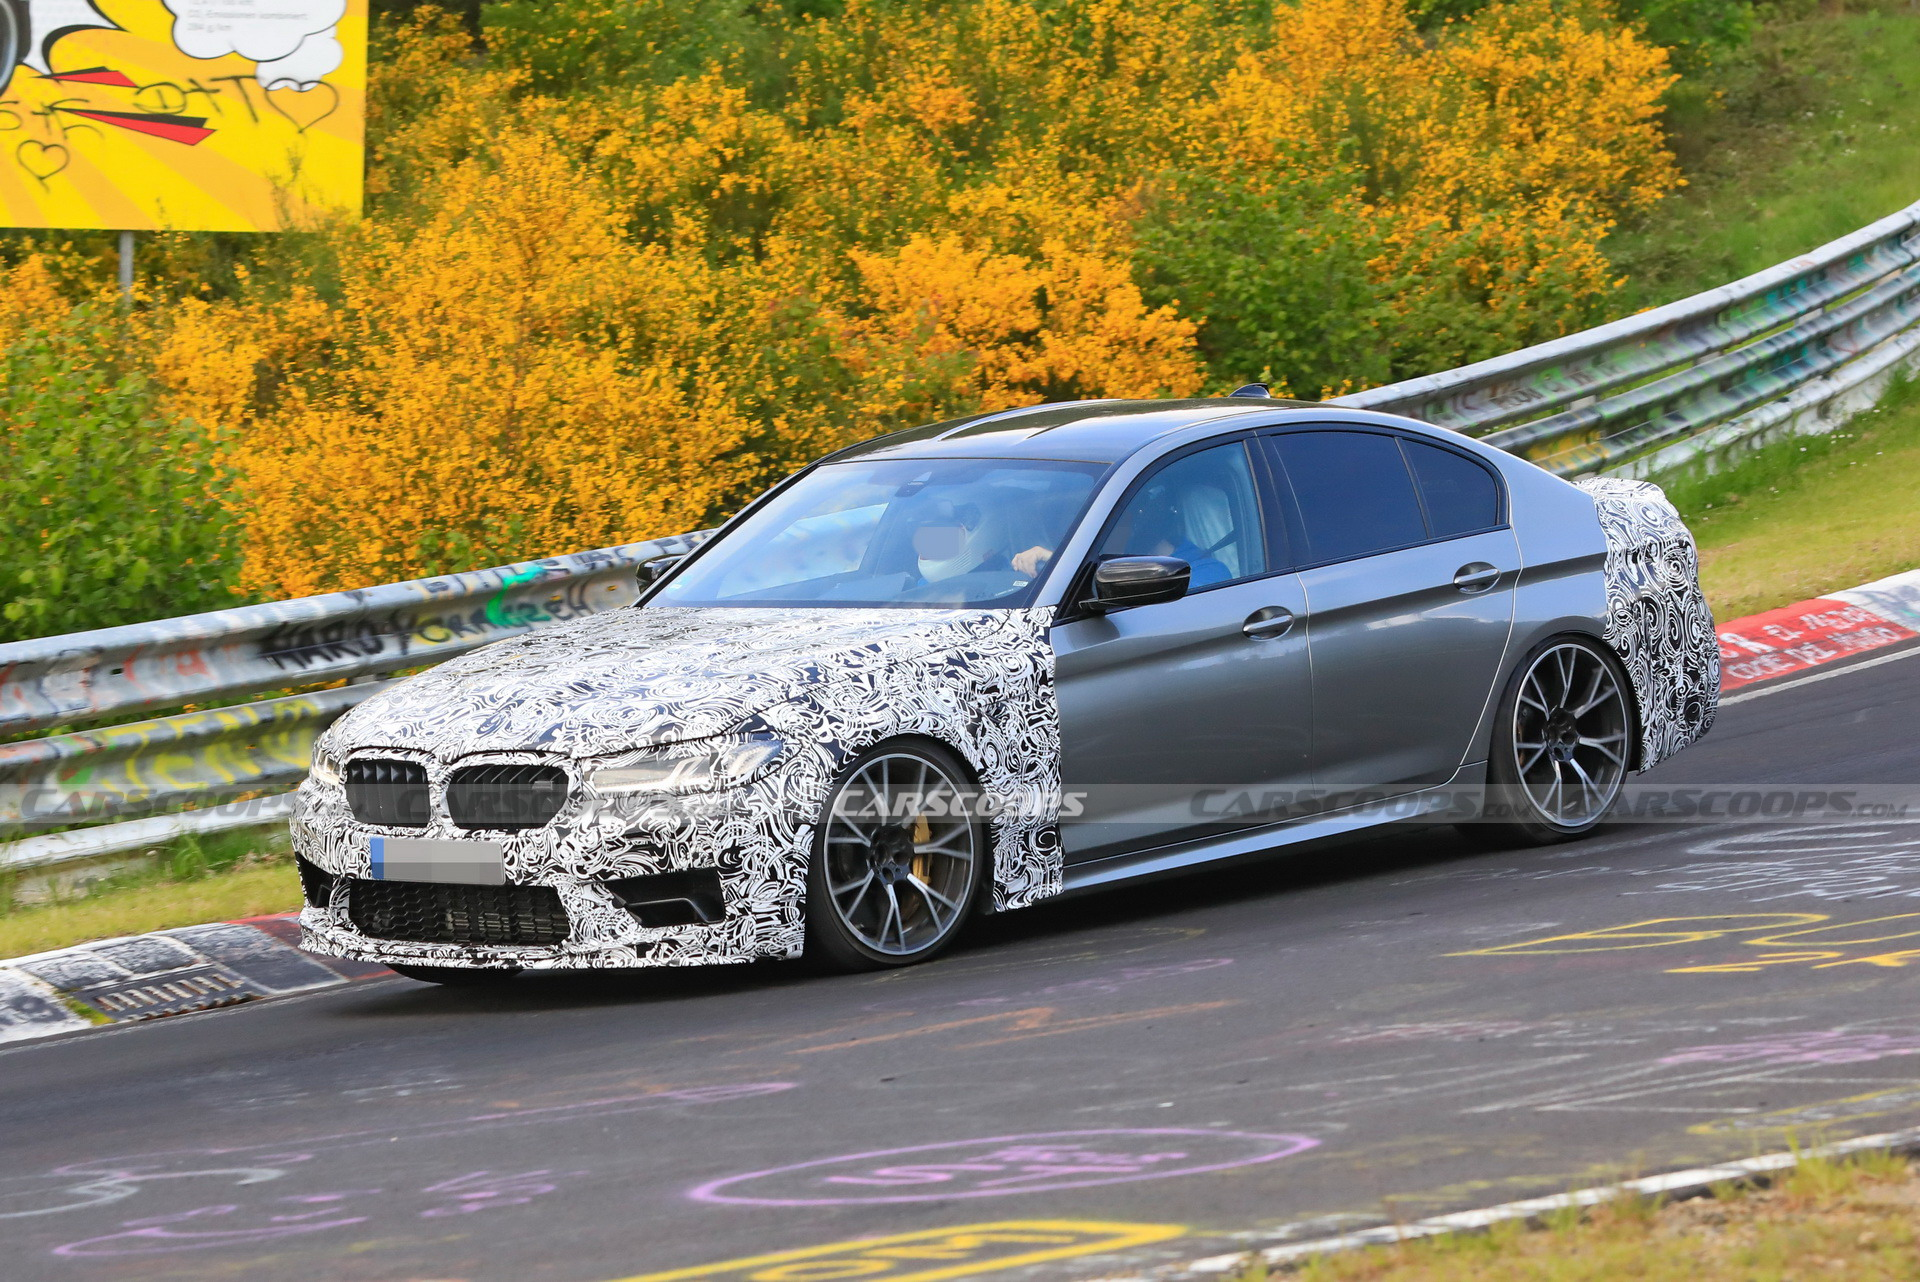 2021 Bmw M5 Cs Reportedly Due This Year With Around 640 Hp Carscoops